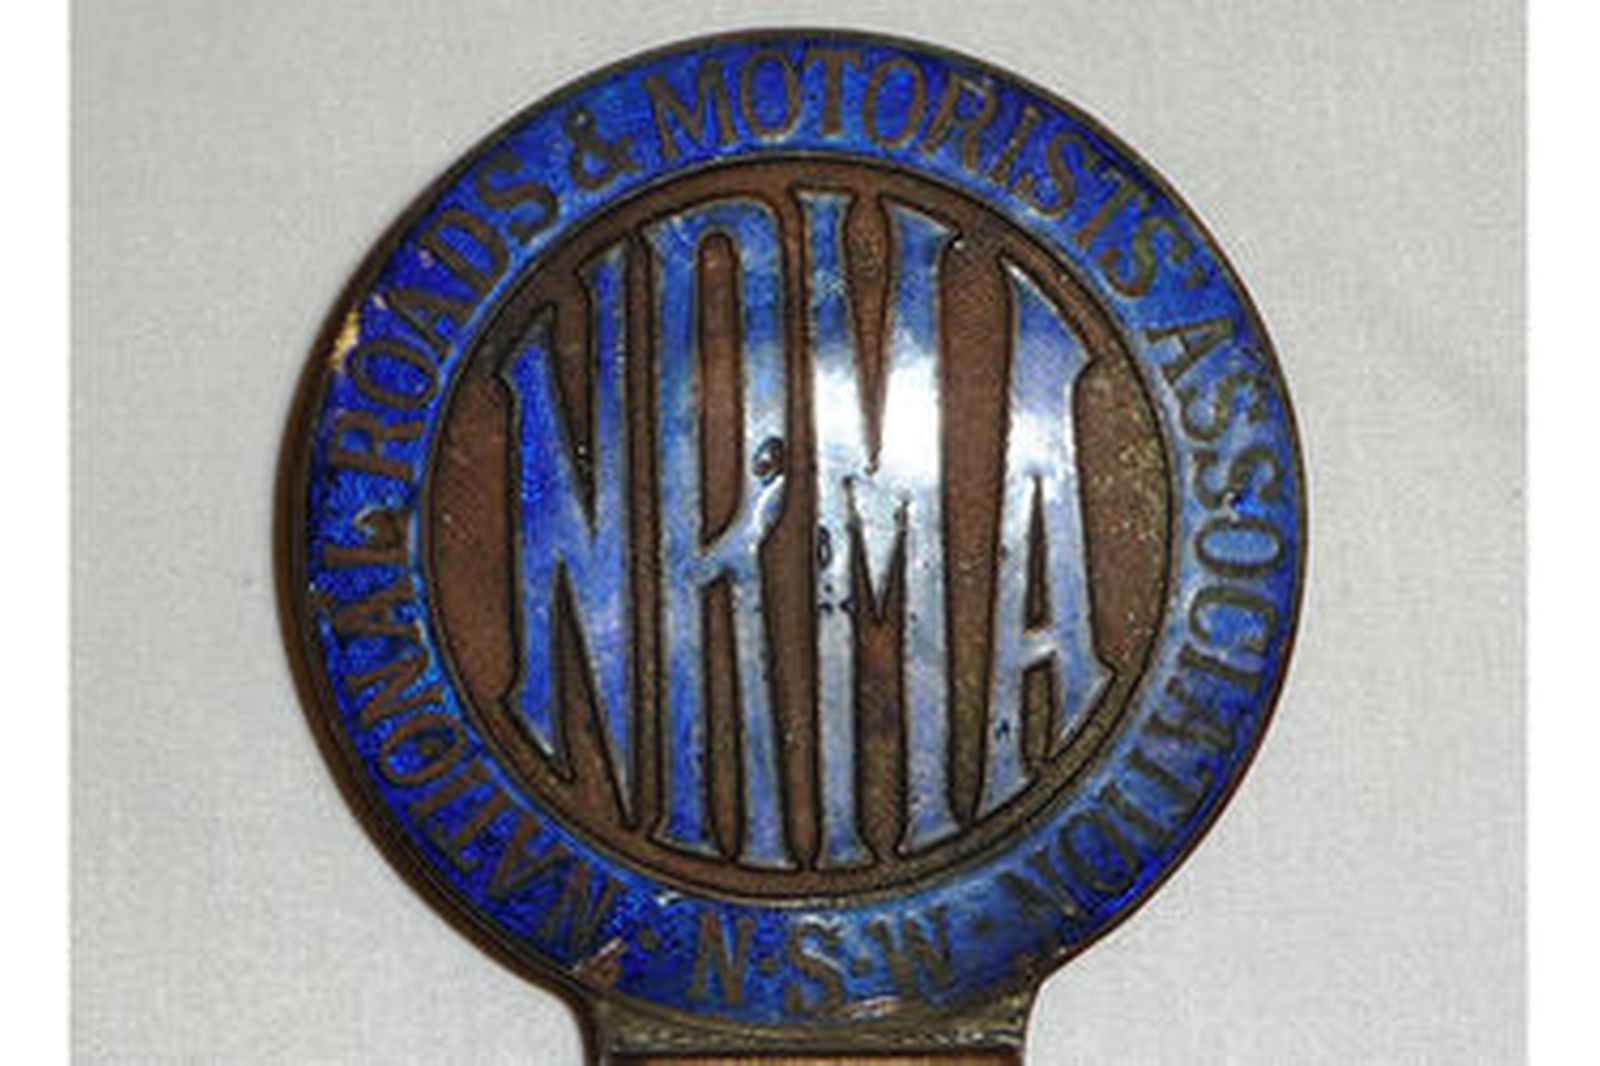 Cast Steel Michelin Man from large compressor (35cm tall) & early NRMA Badge